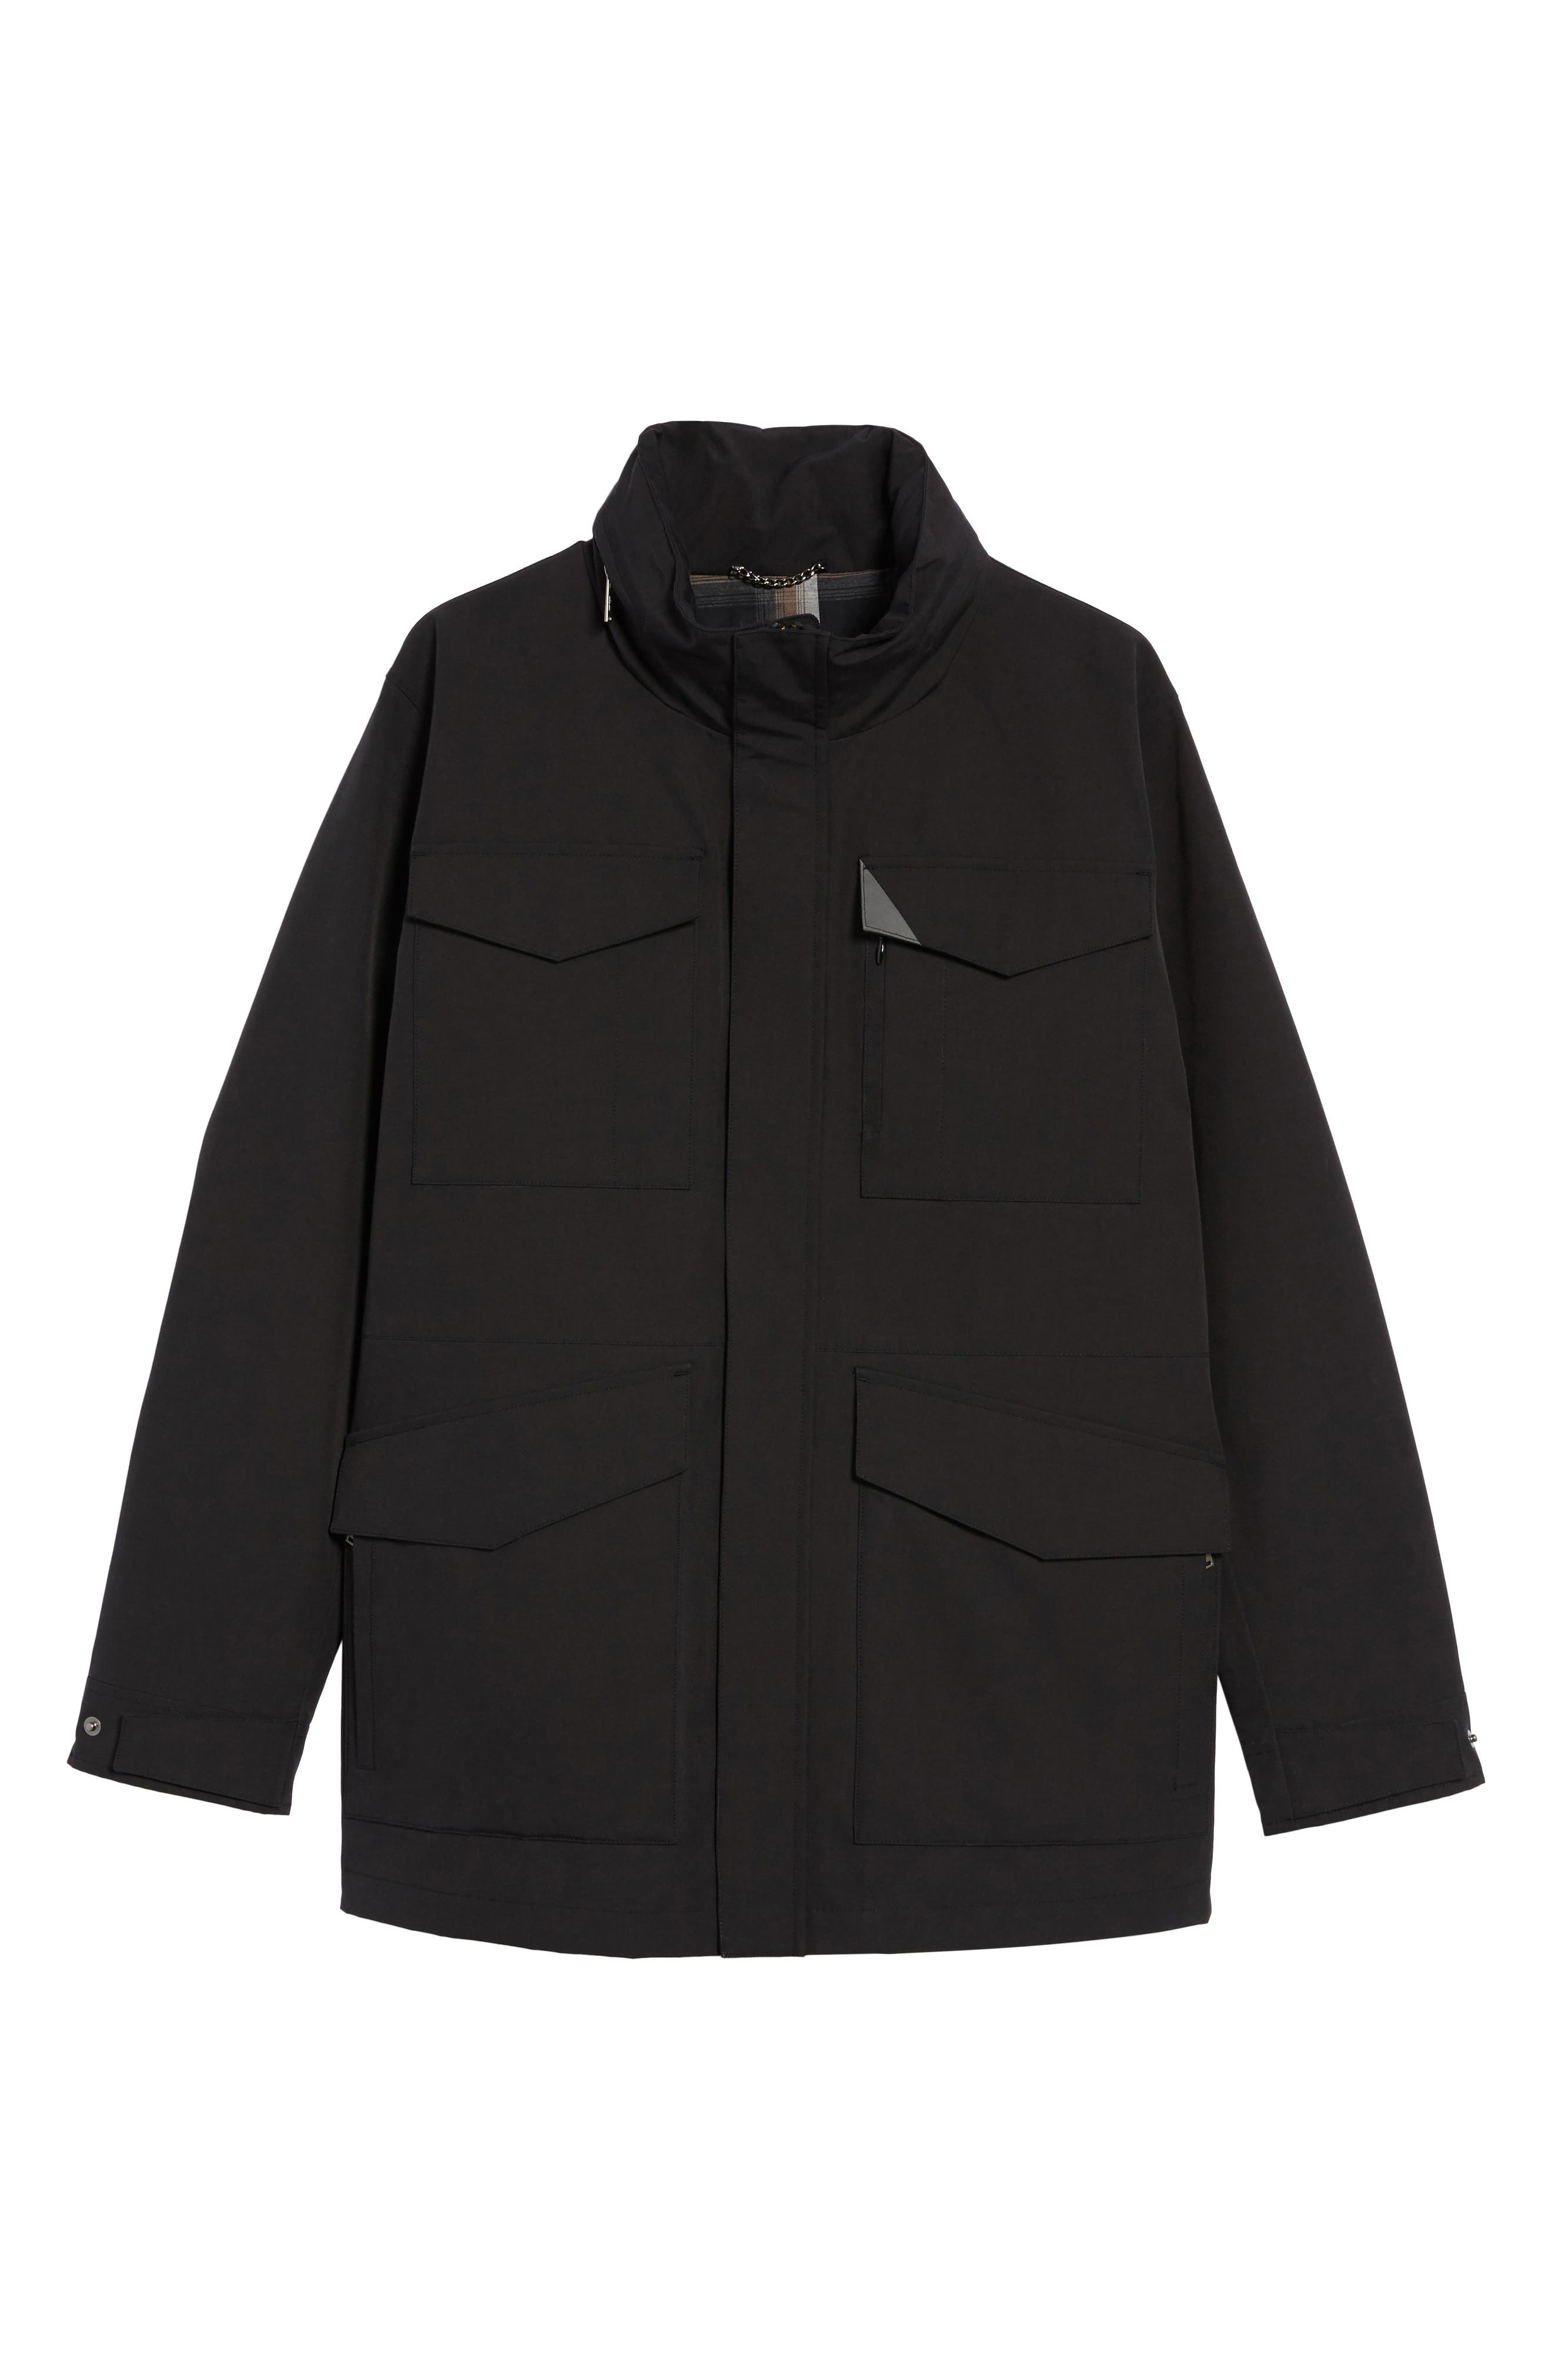 Clyde Hill Waterproof Field Jacket,                             Alternate thumbnail 5, color,                             001